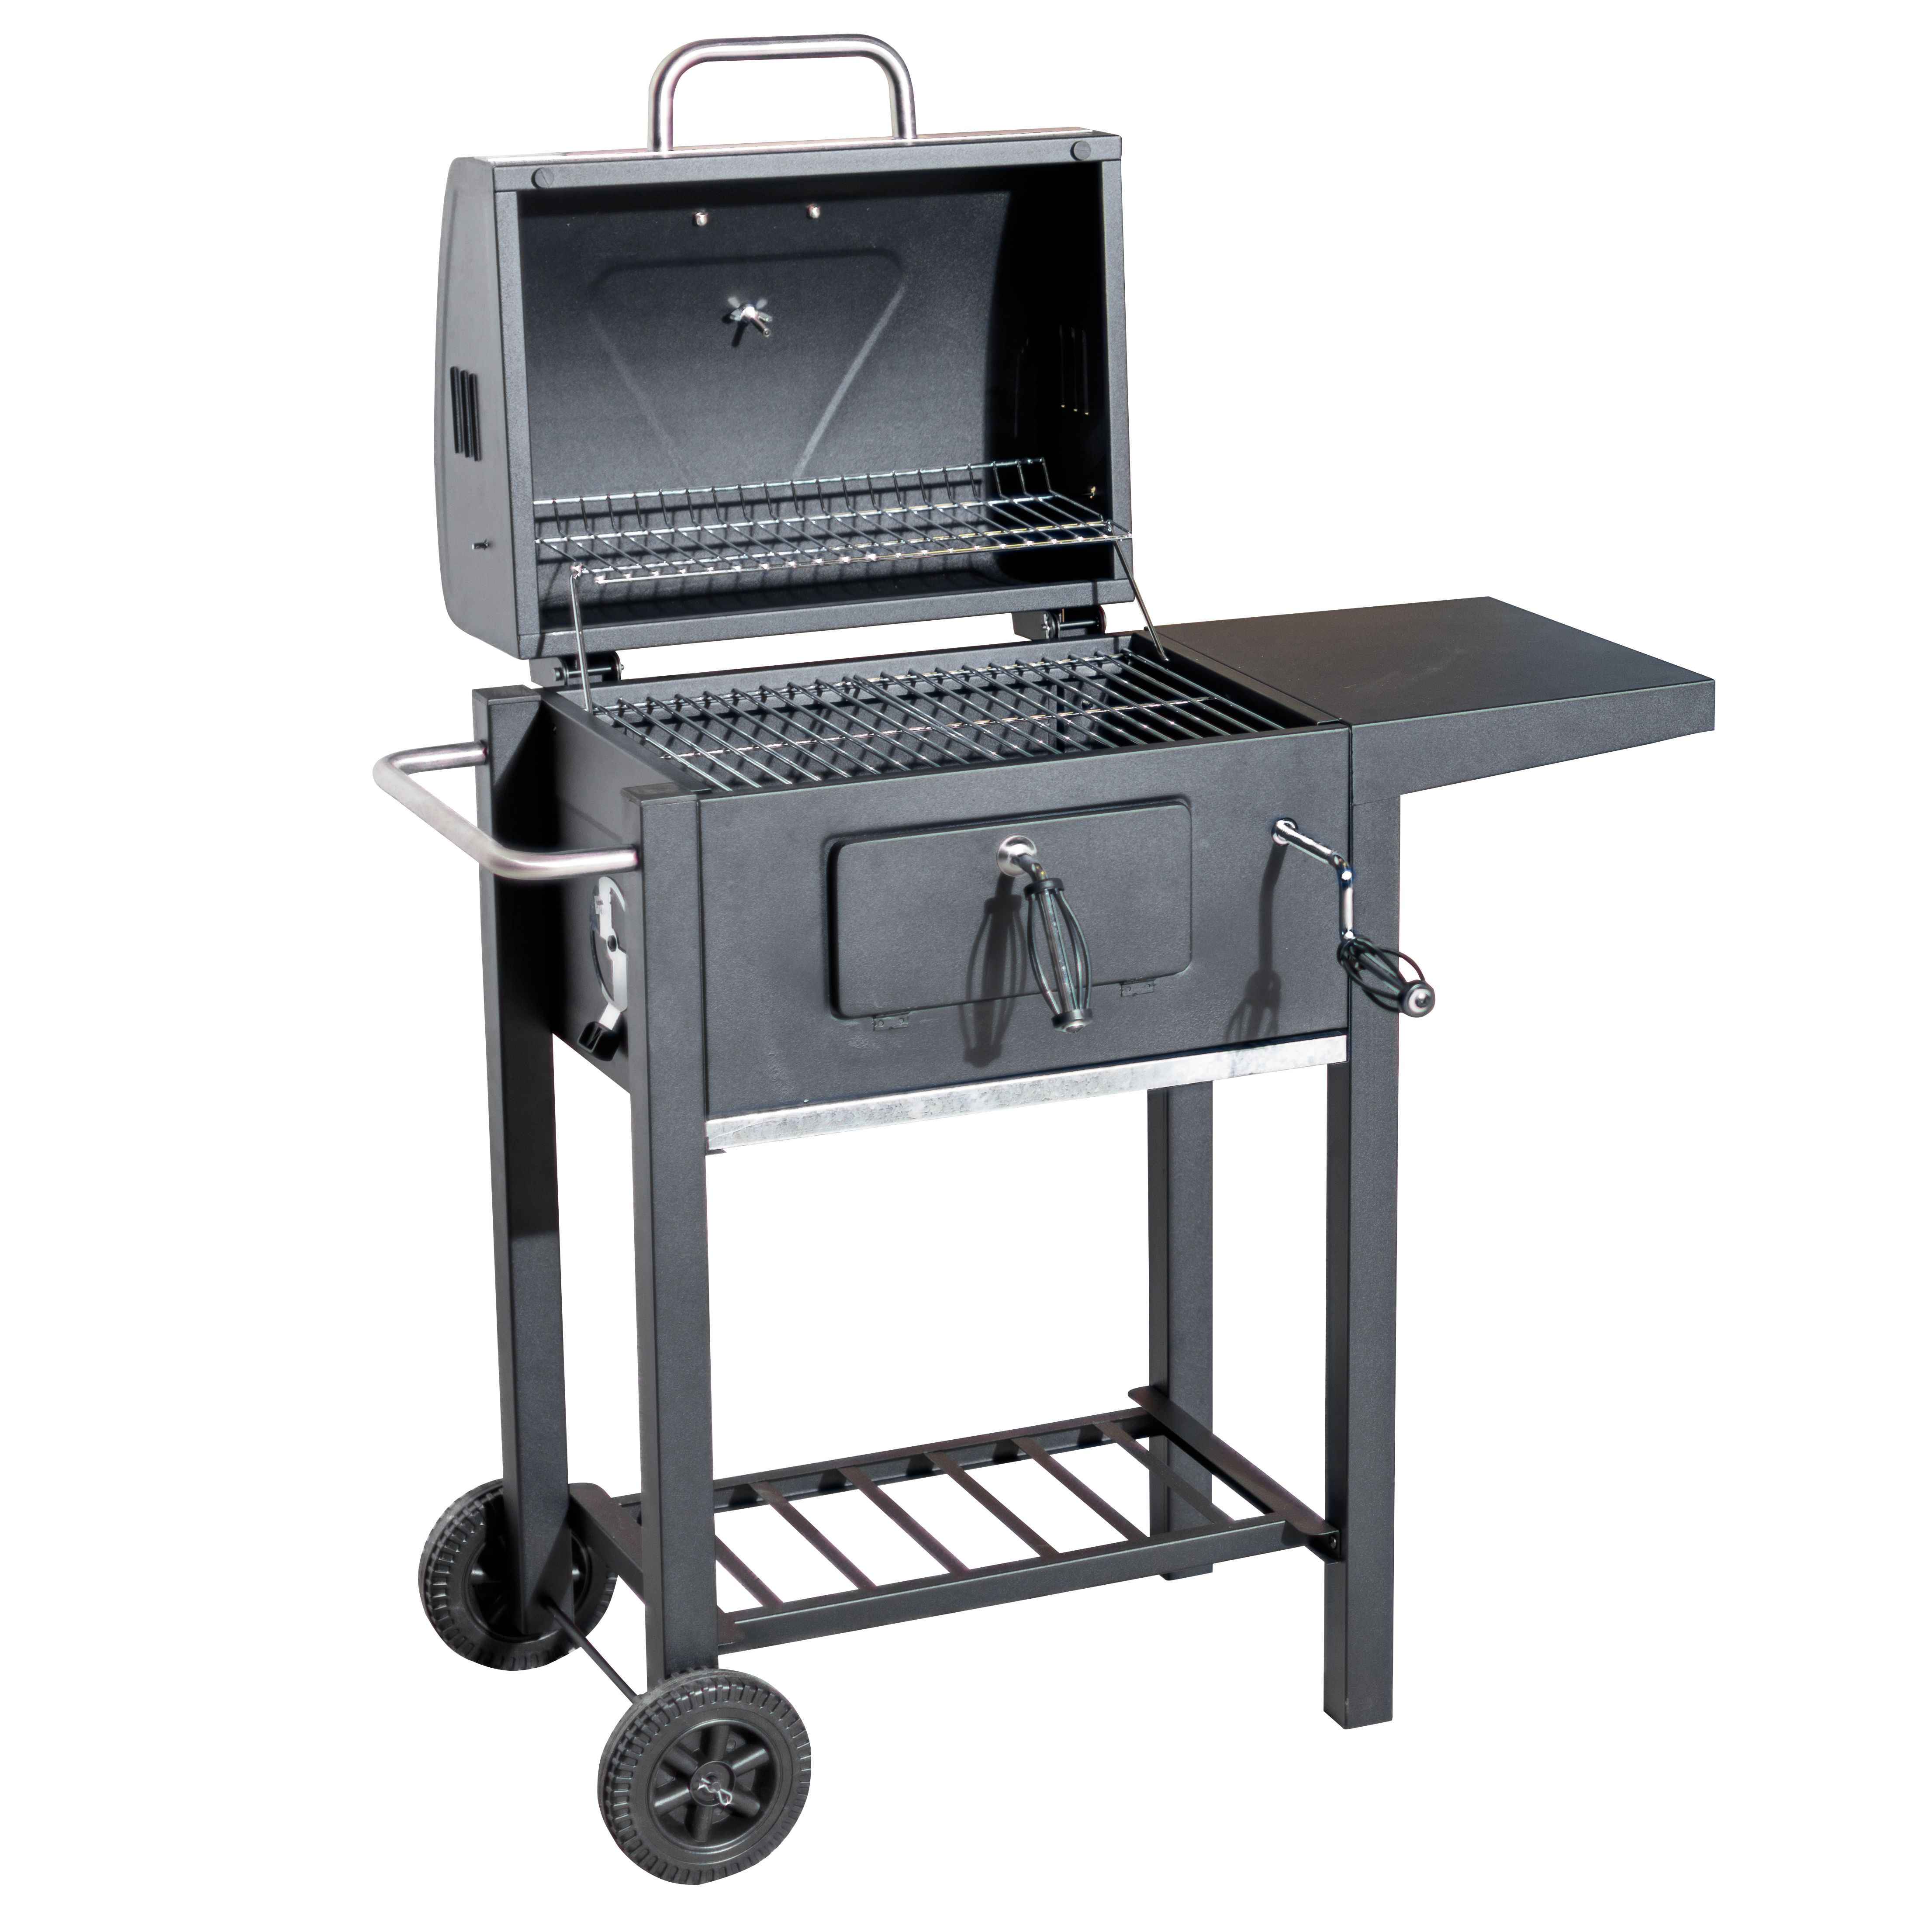 Flame Master Charcoal Trolley BBQ - Robert Dyas